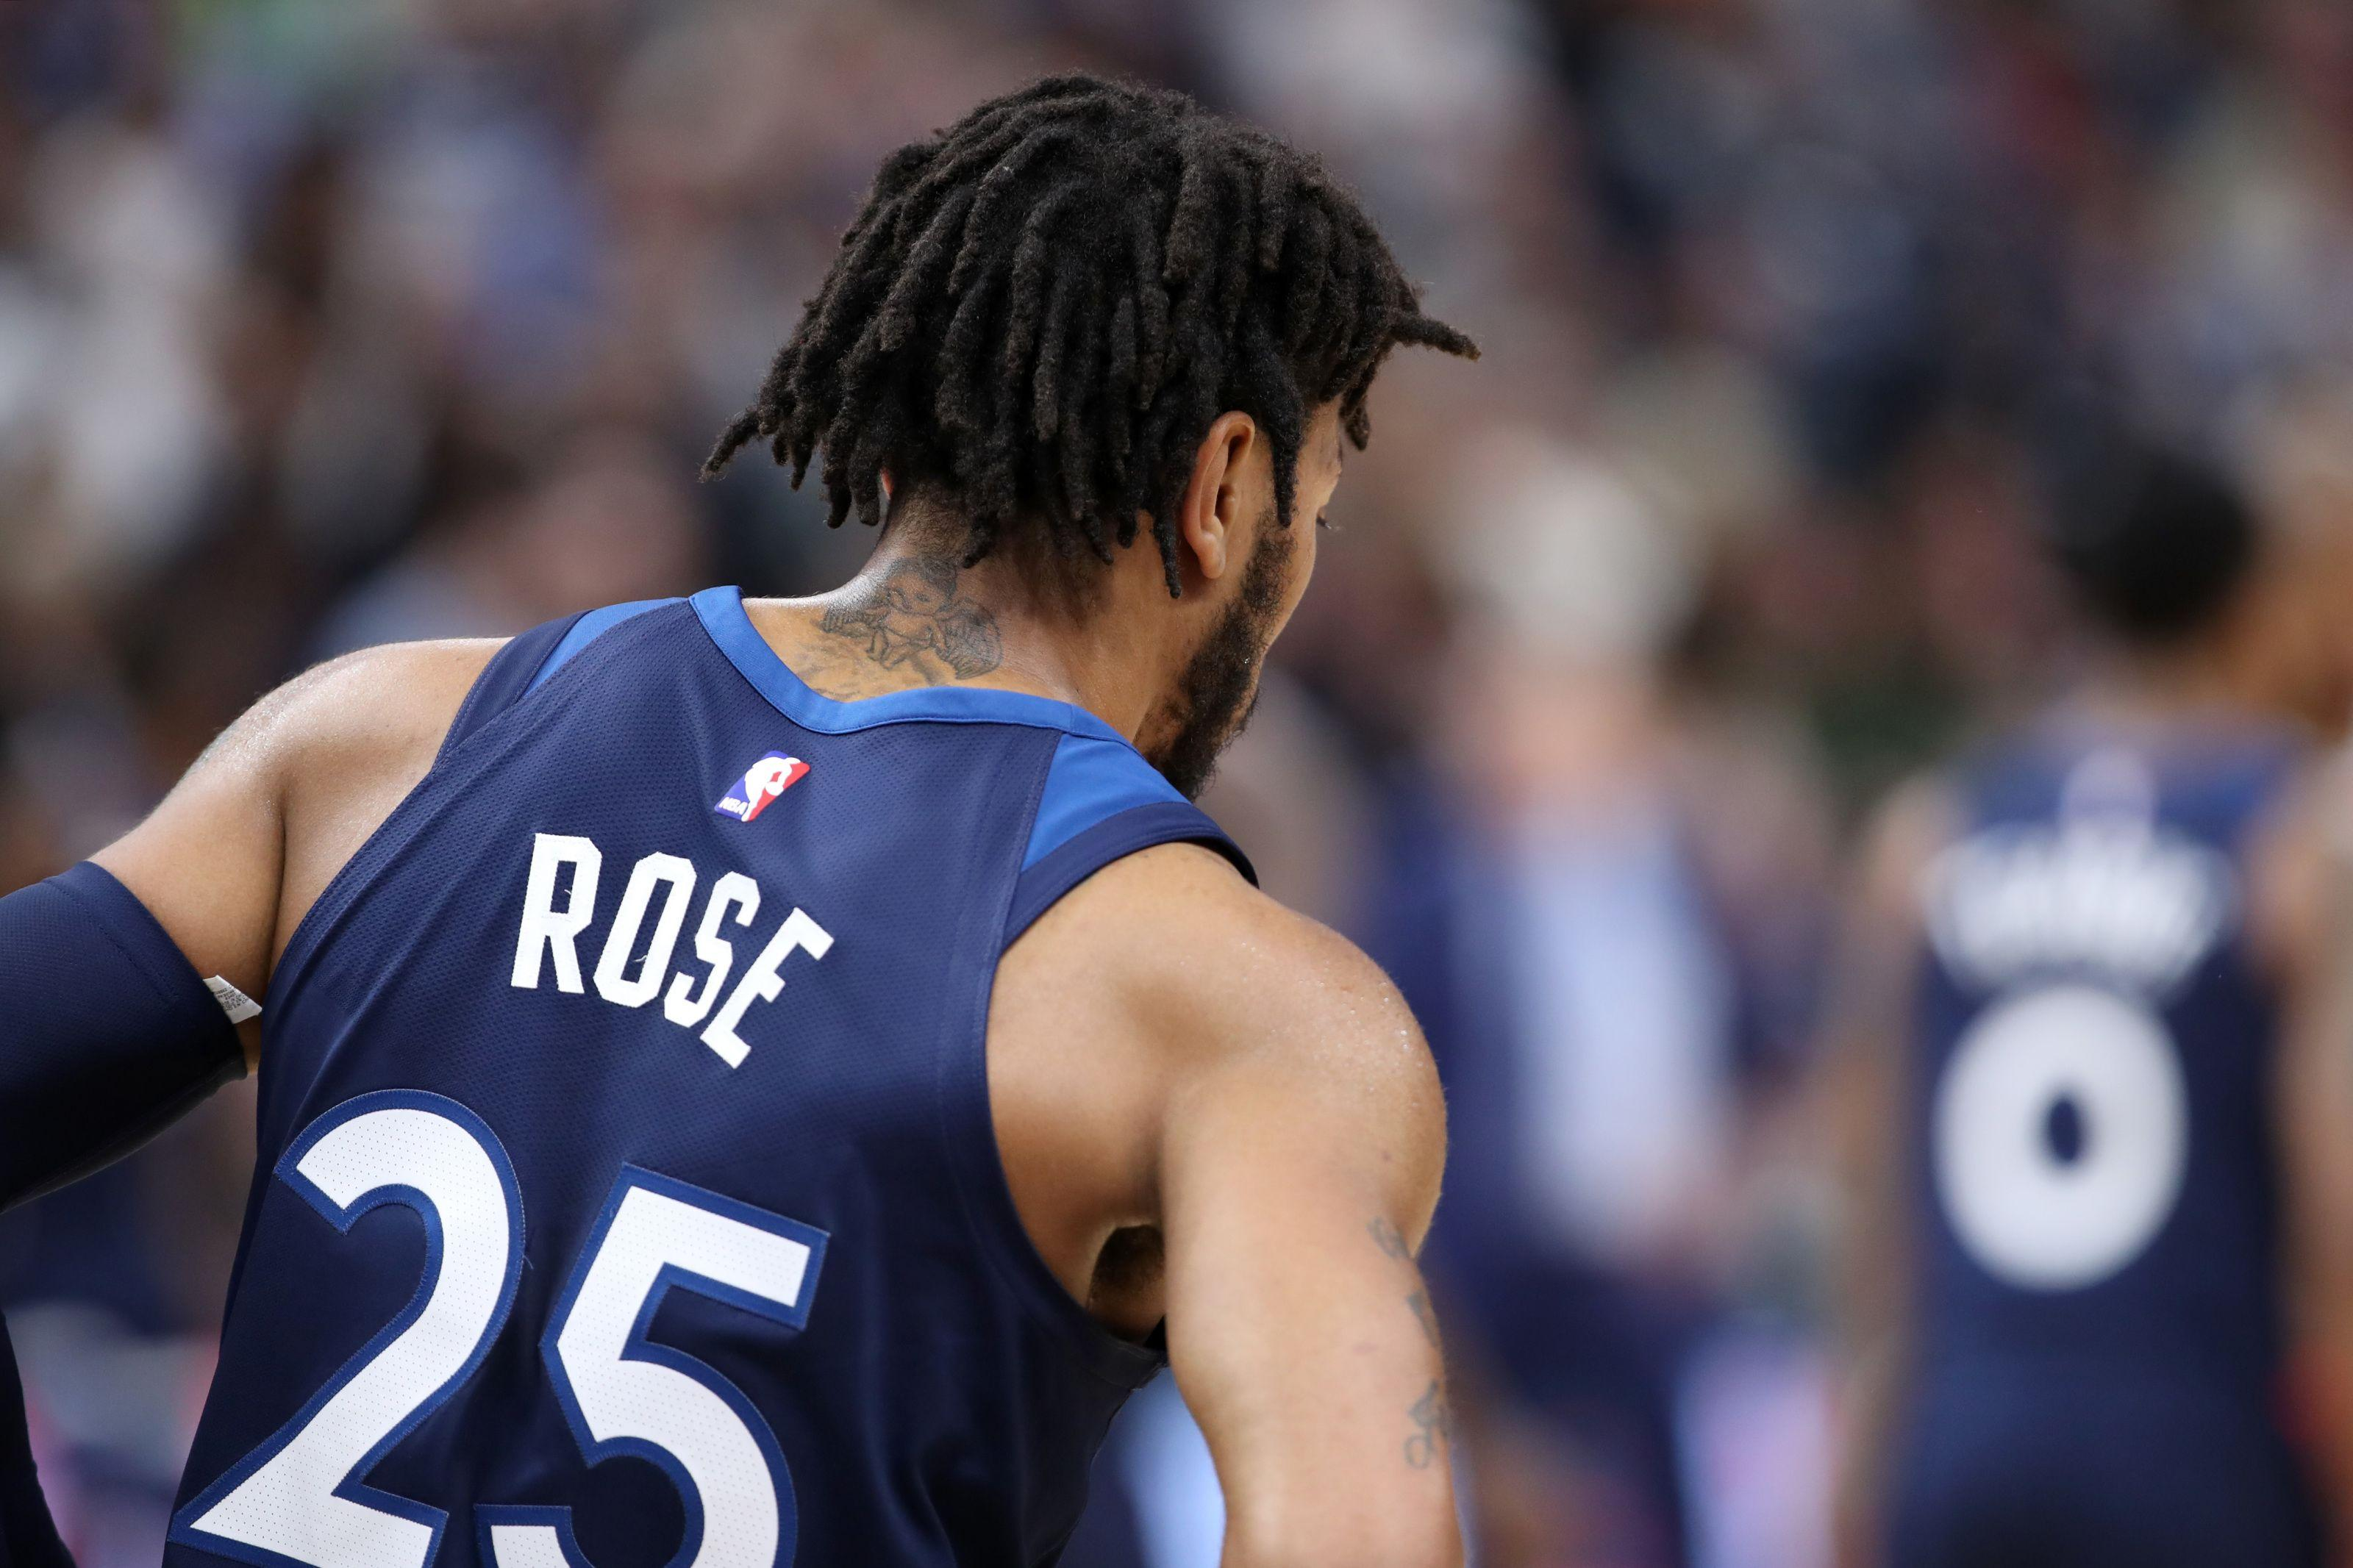 Derrick Rose is proving to be a solid addition for the Timberwolves